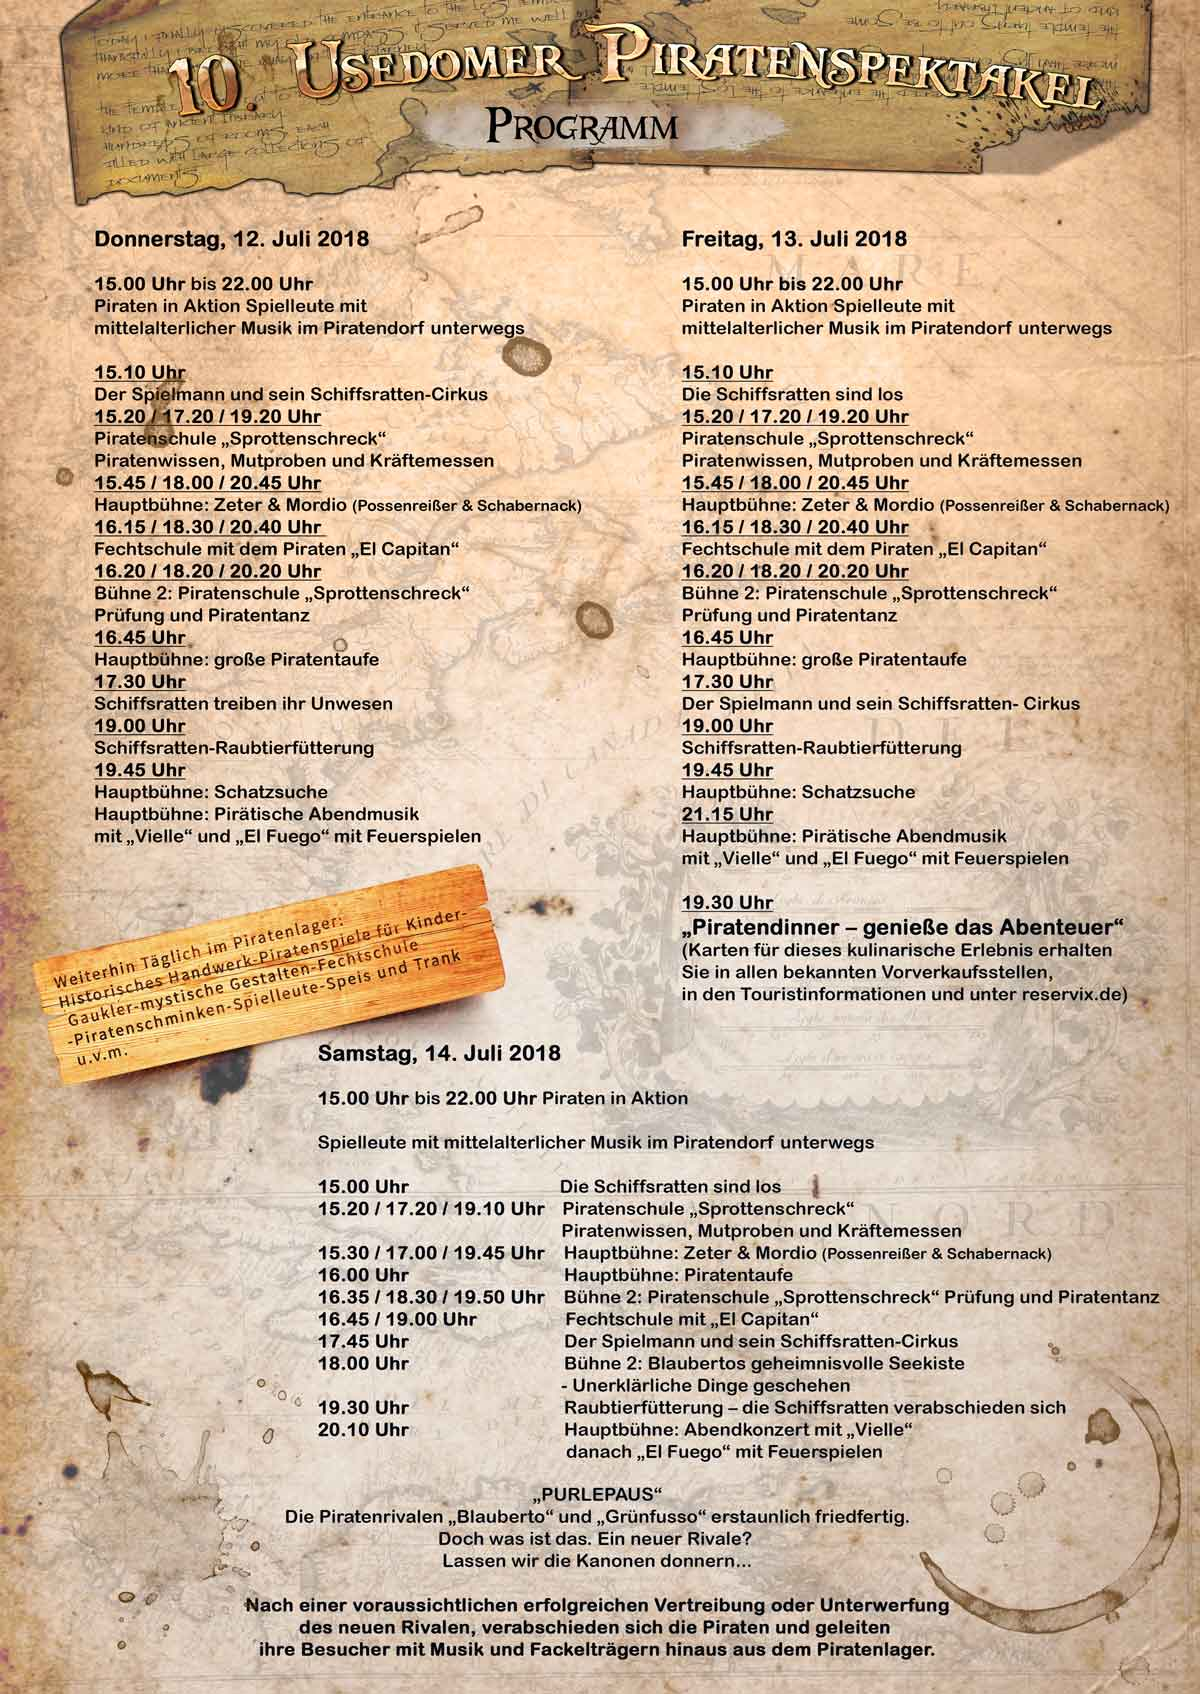 Piraten Programm 2018